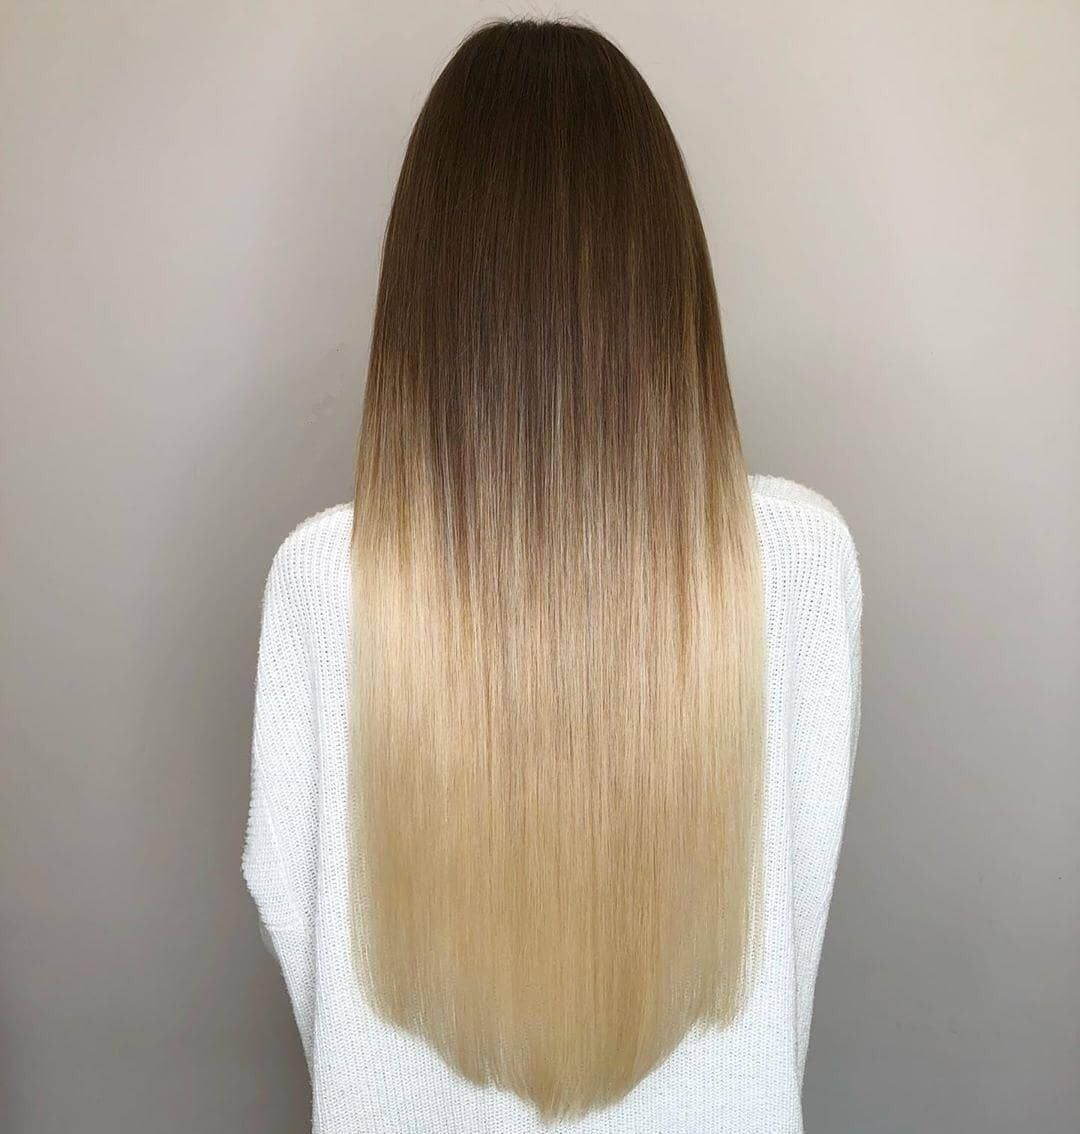 Awesome Hairstyles For Girls With Long Hair Hair Styles Long